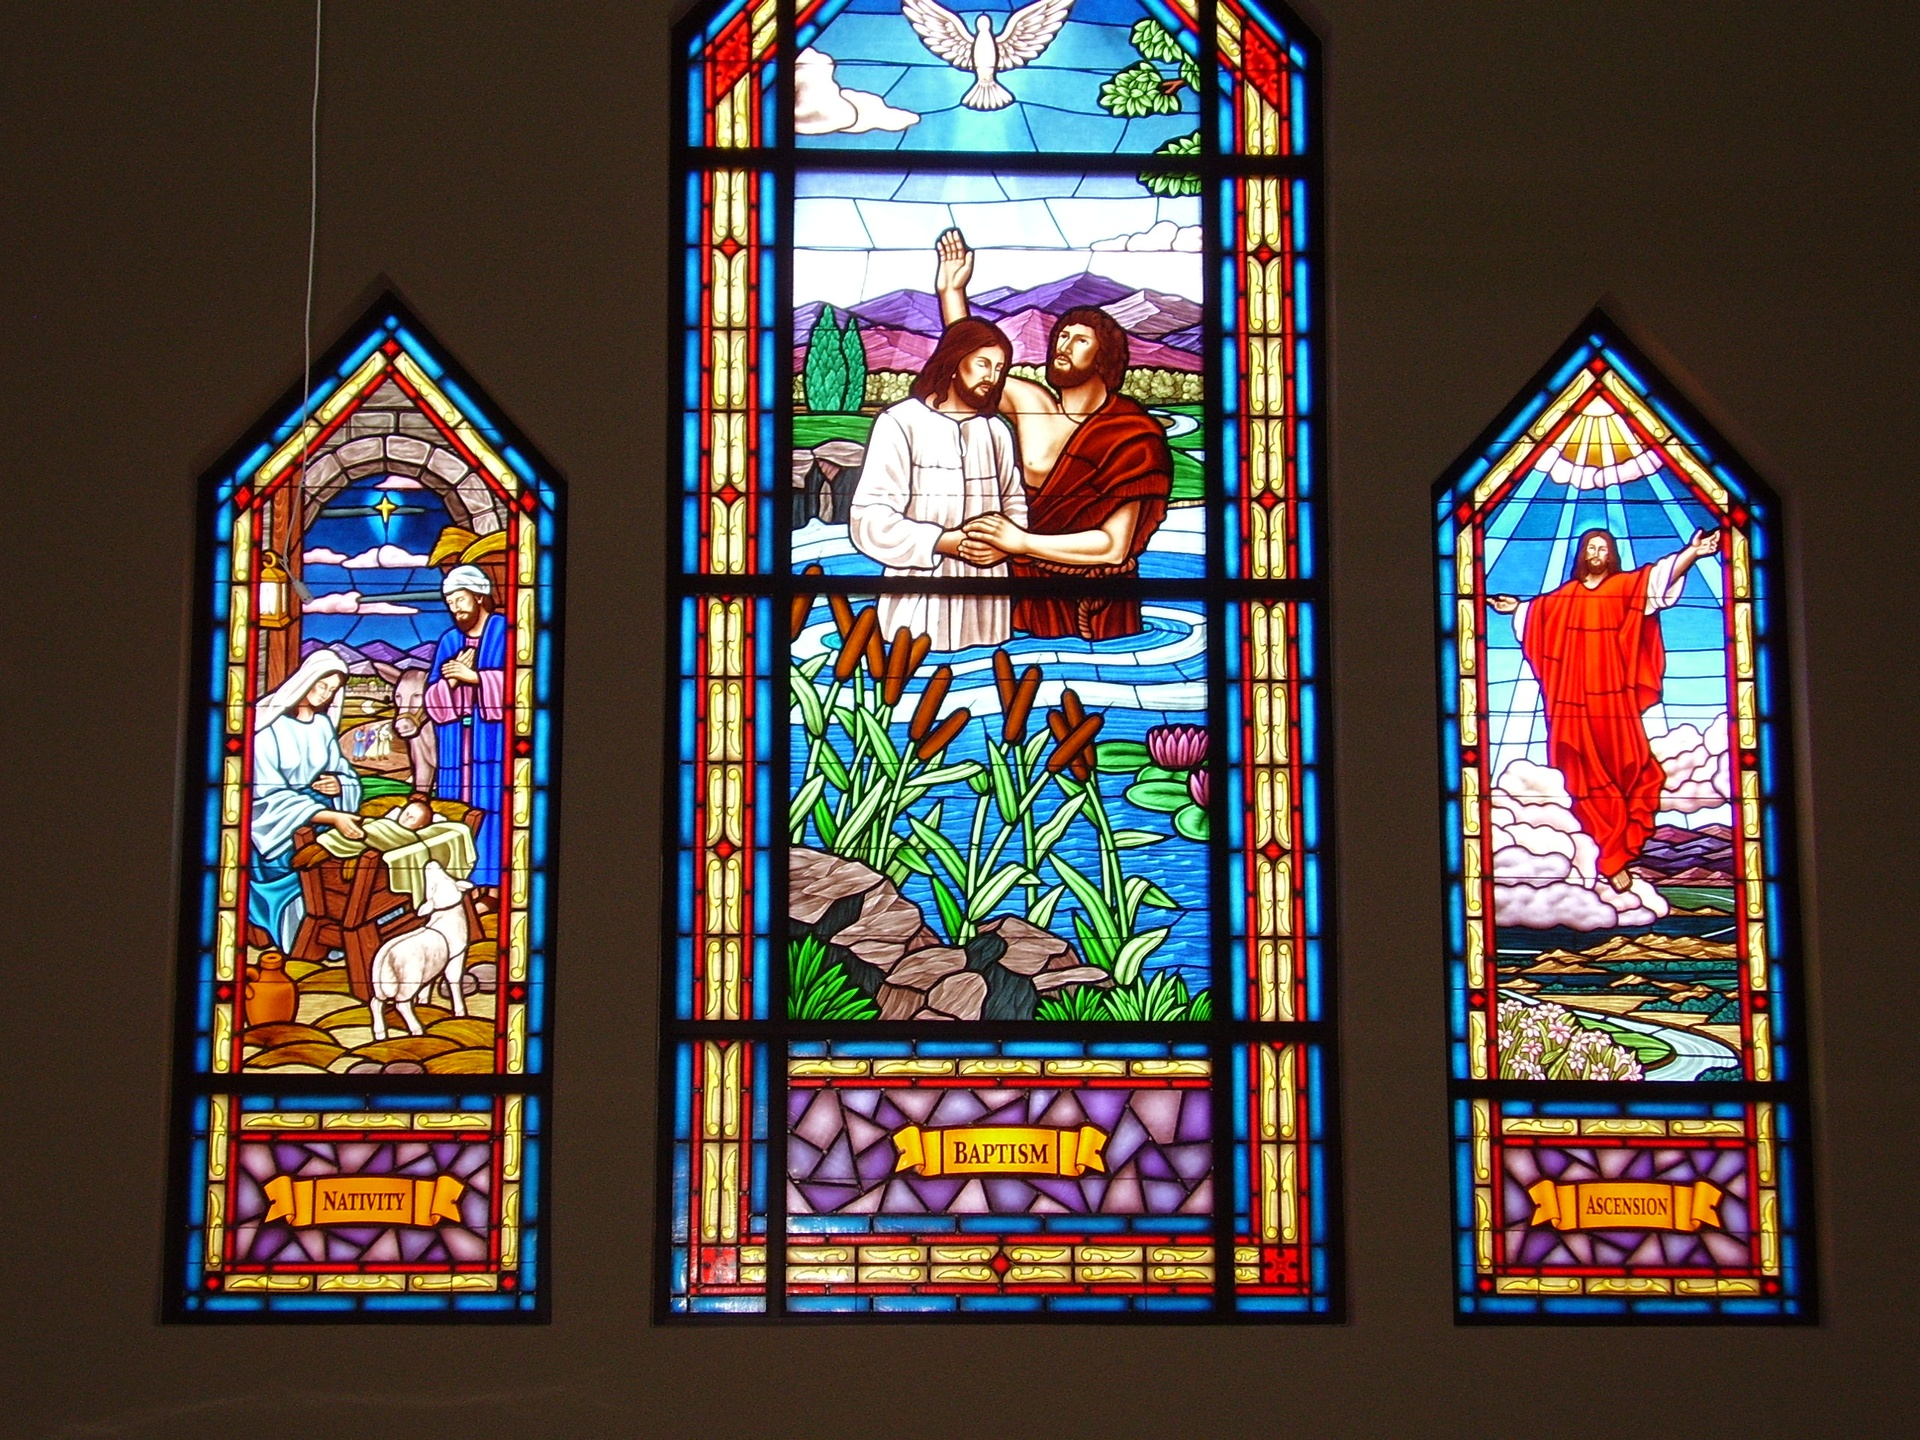 fedad88a2ace Stained Glass Windows at Bethany Christian Church in Arapahoe